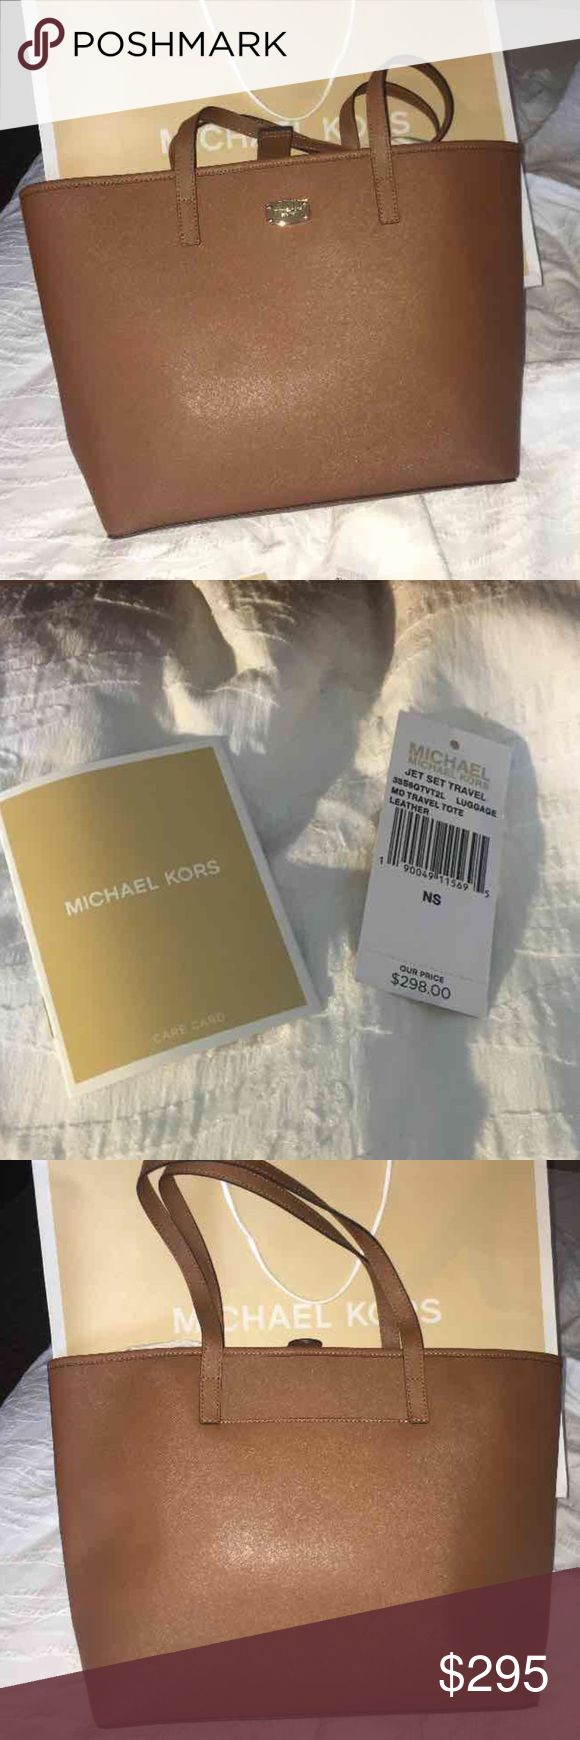 New Michael Kors bag Purchased this from the Michael Kors store for $298+ tax Michael Kors Bags